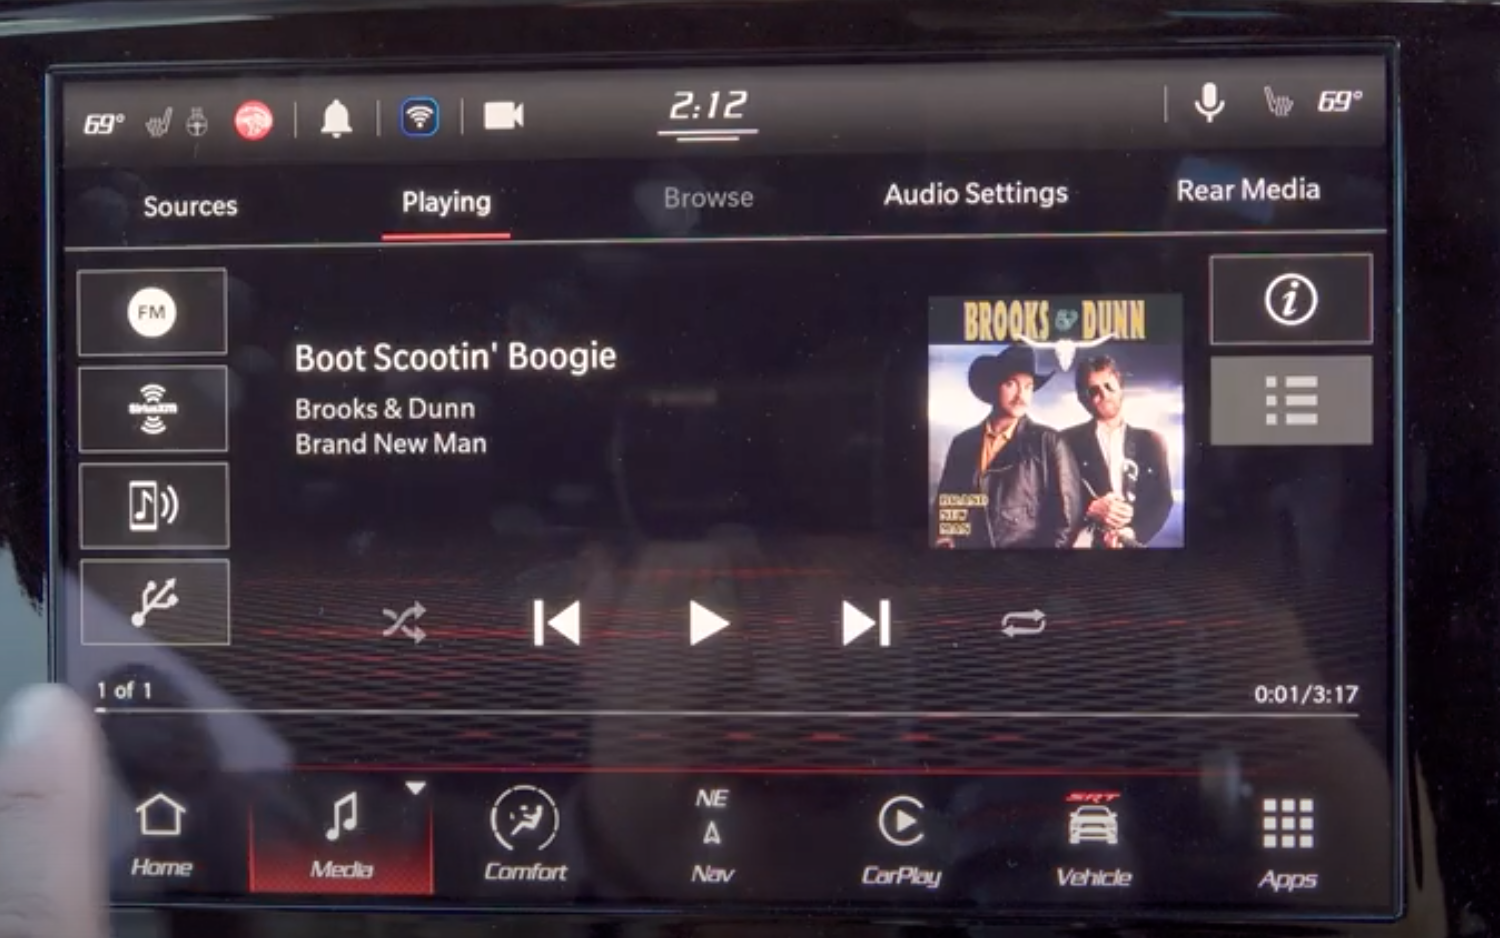 The music player screen with a list of sources on the left side